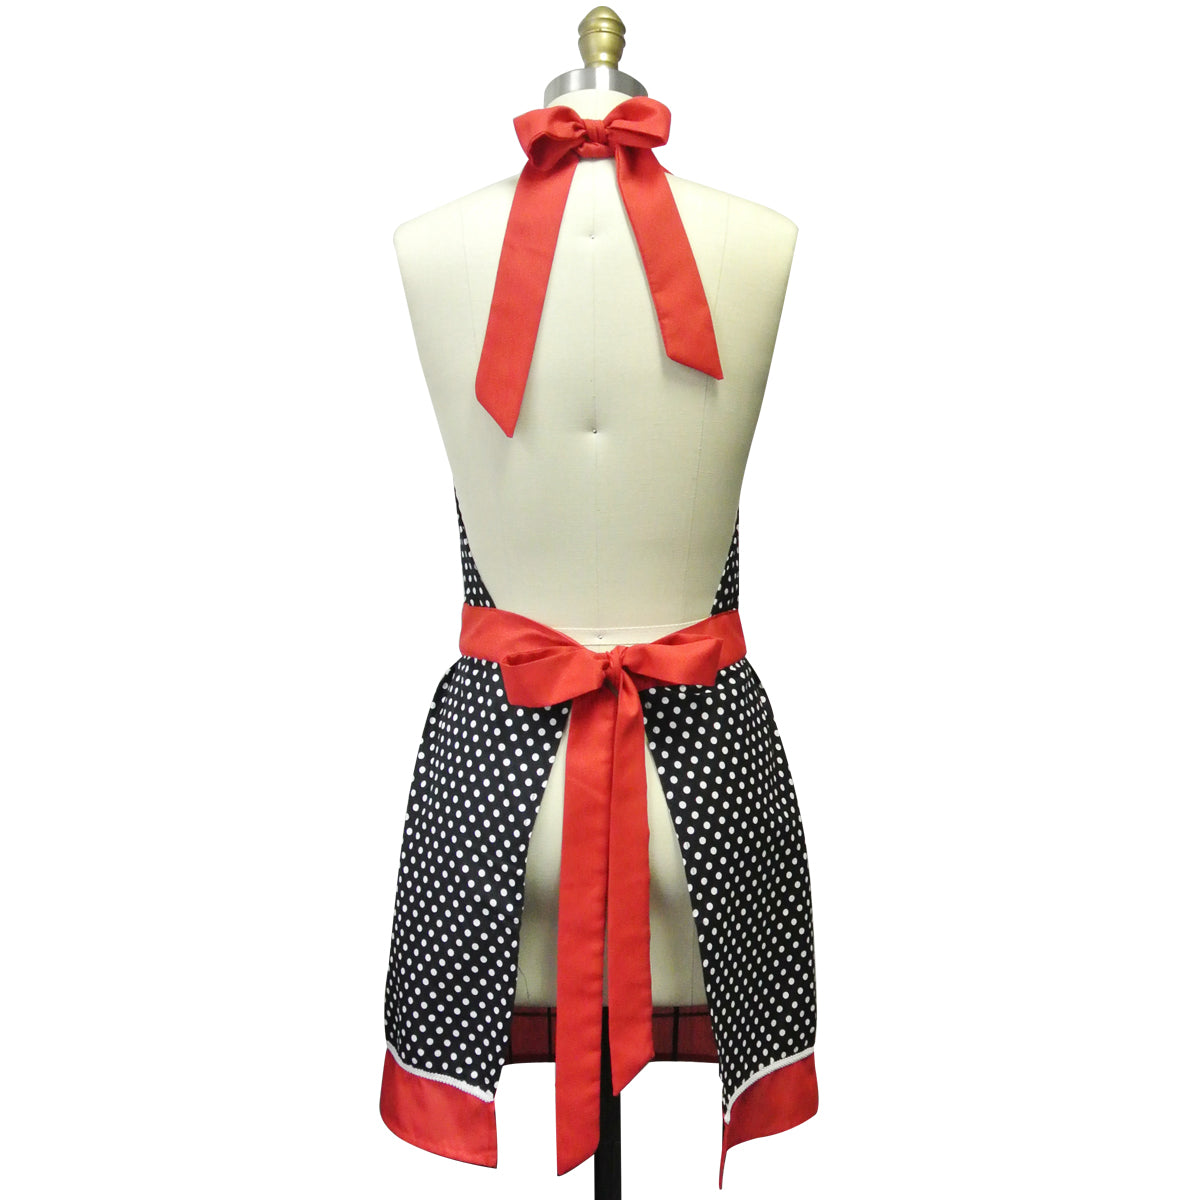 Kella Milla Sleek and Sassy Apron